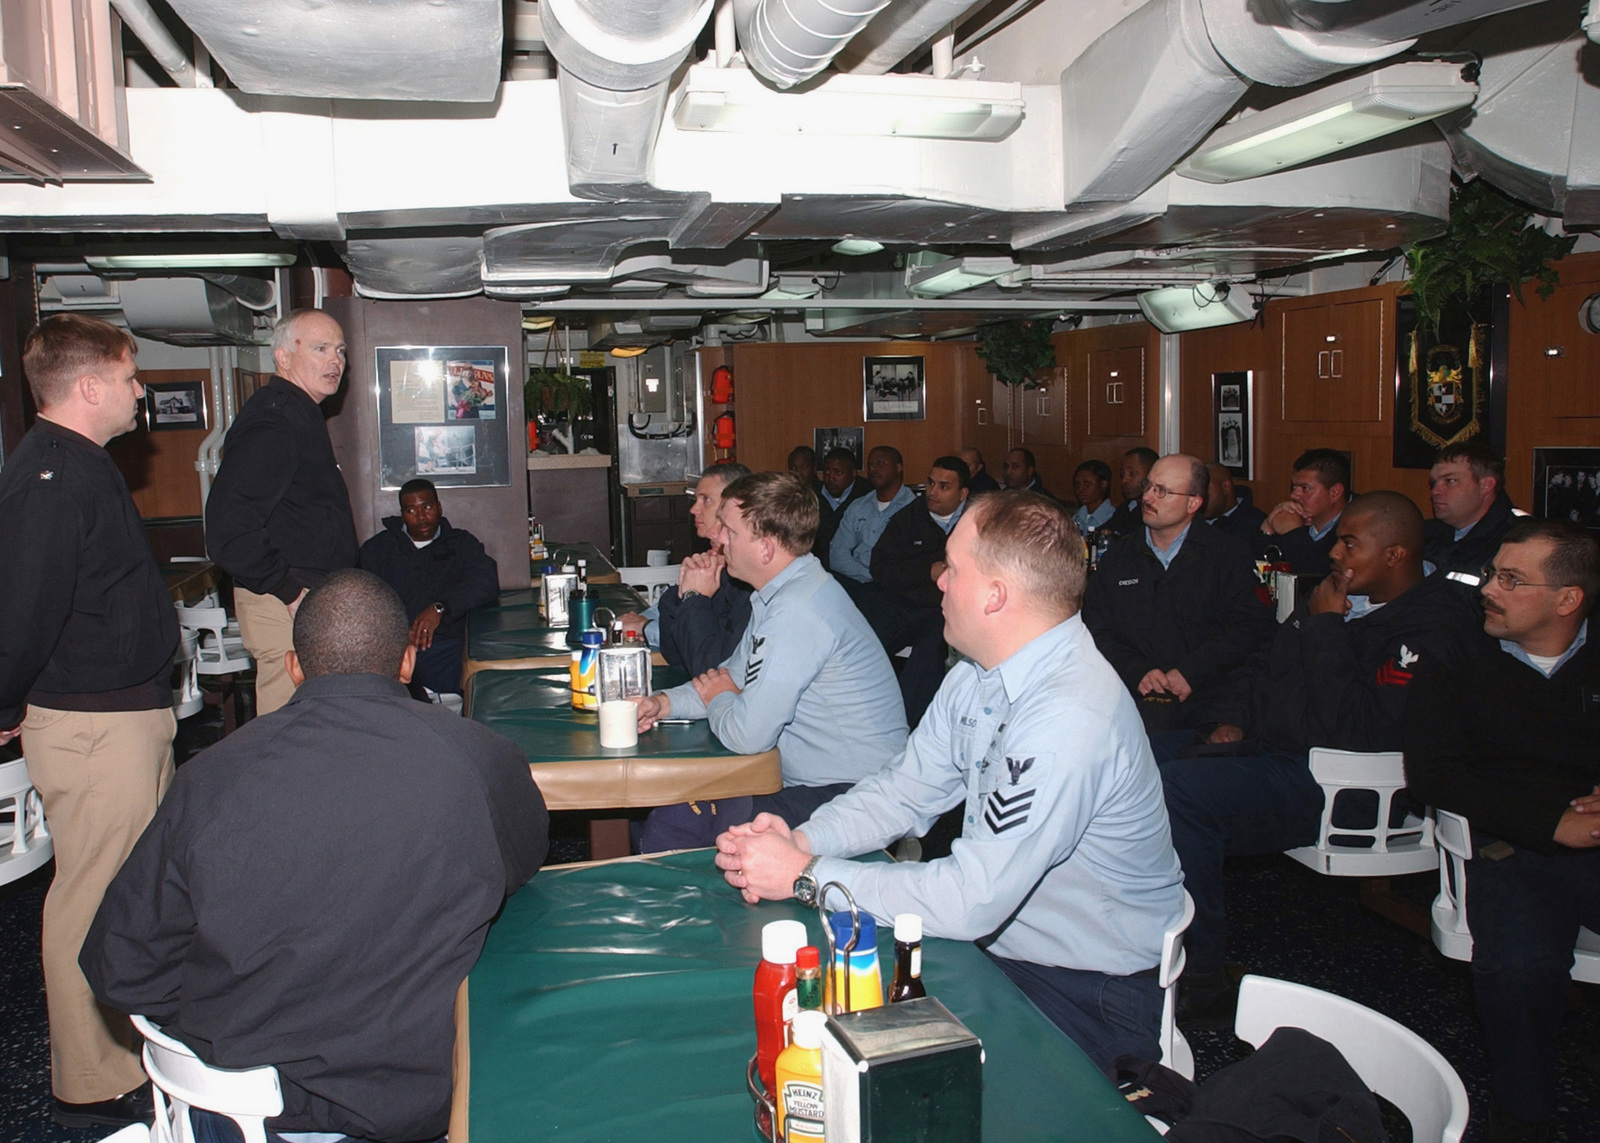 US Navy (USN) Rear Admiral (RADM) Richard O'Hanlon (standing background left), Commander, Strike Force Training Atlantic (STRKFORTRALANT), speaks with a group of PETTY Officer First Class (PO1) Sailors about fleet shipboard changes and issues that affect the crew, during his visit aboard the USN Ticonderoga Class (Flight II): Guided Missile Destroyer (Aegis), USS SULLIVANS (DDG 68)